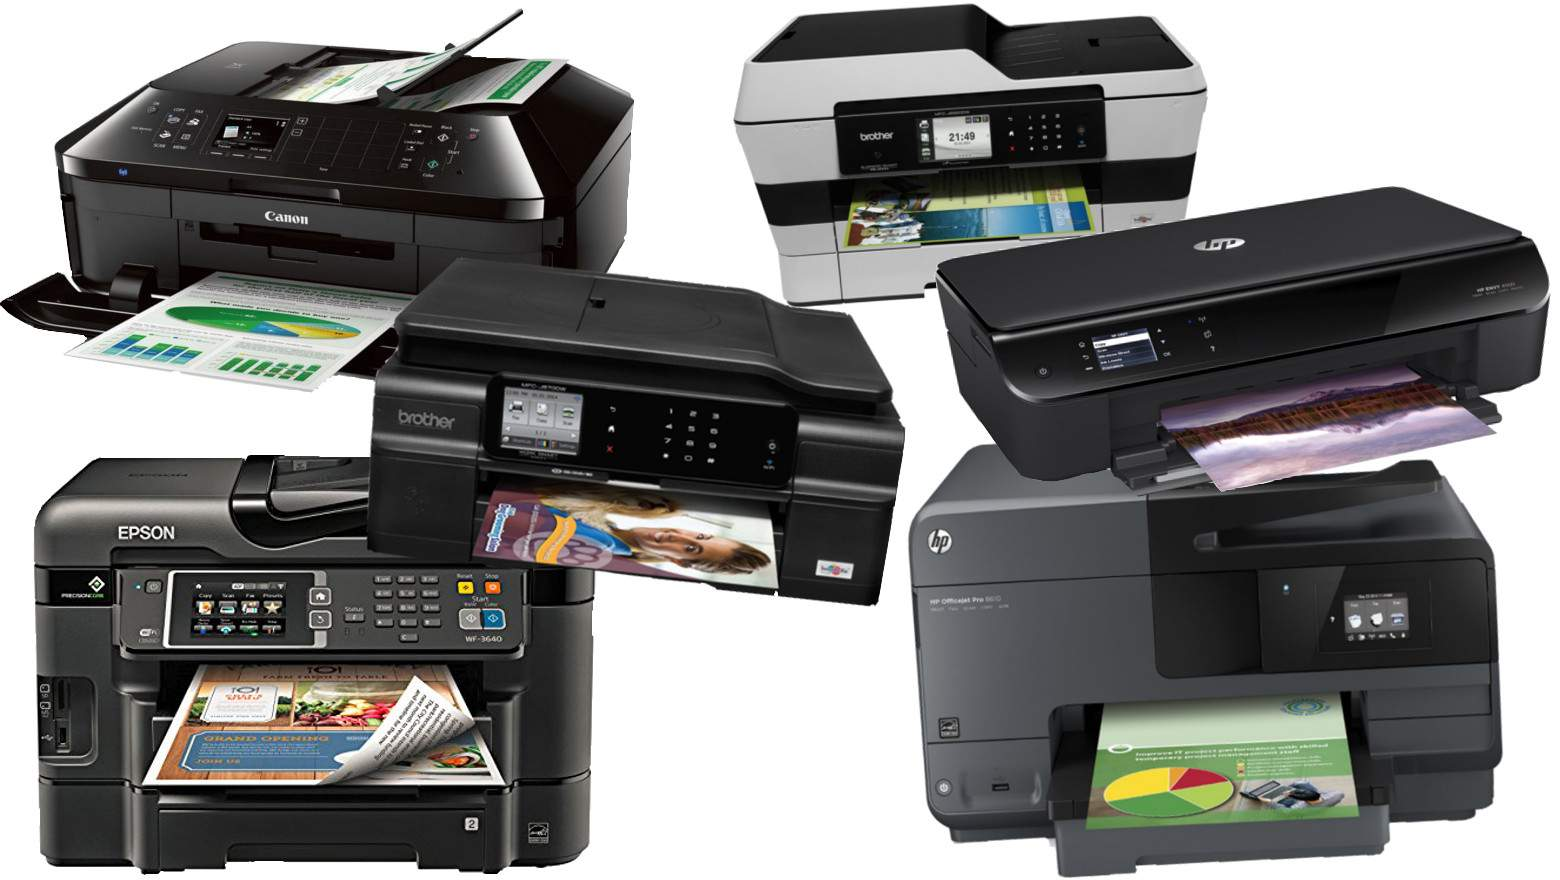 shogan systems is the best provider of barcode pinters and printer services in coimbatore